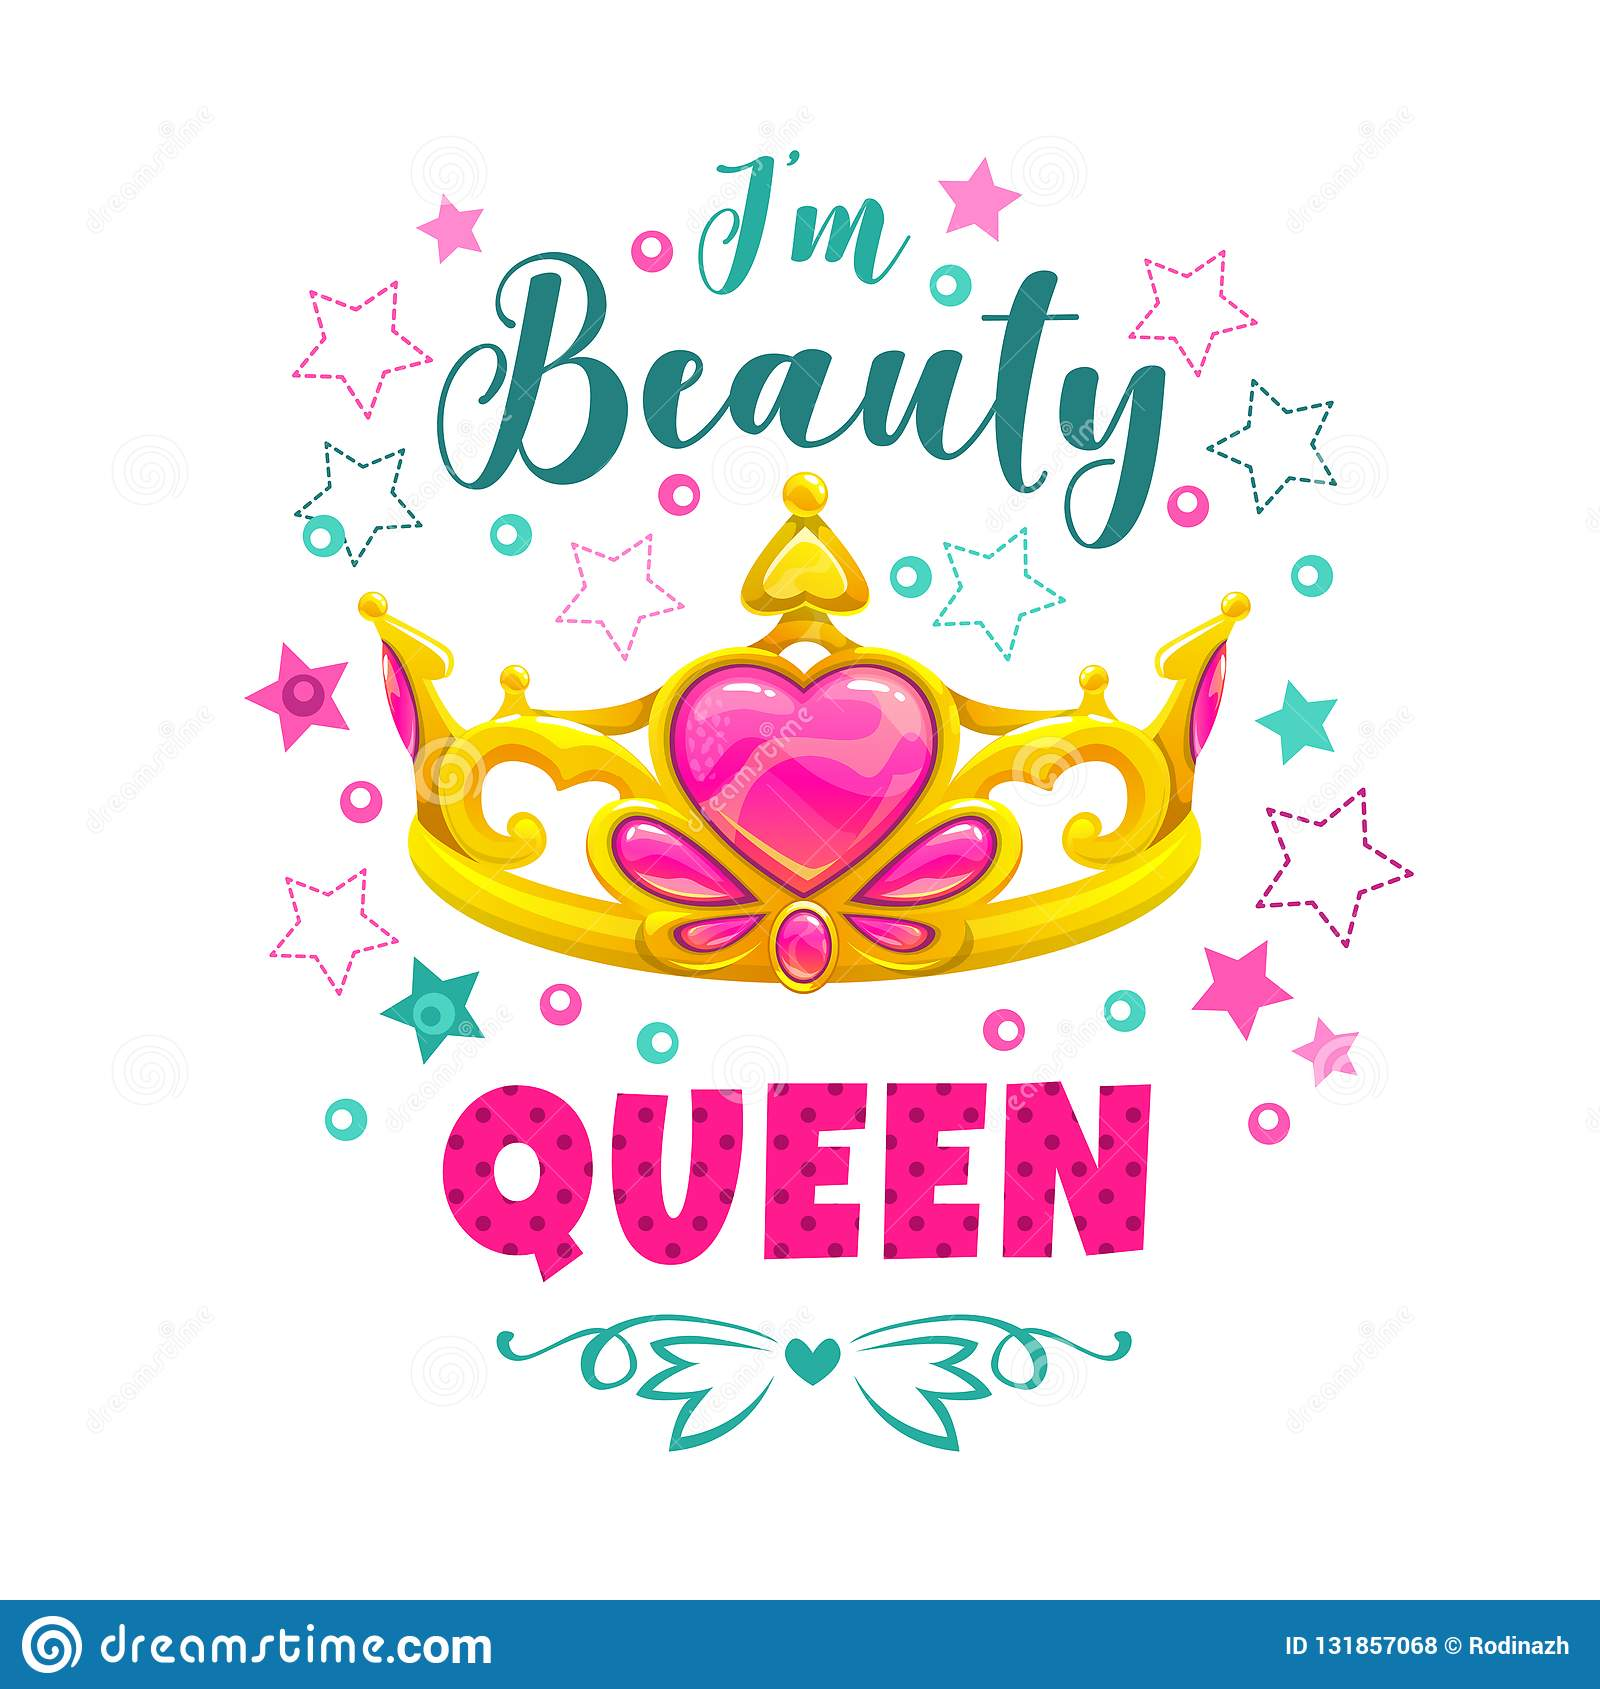 I M Beauty Queen Golden Princess Crown And Slogan Stock Vector Illustration Of Poster Beauty 131857068